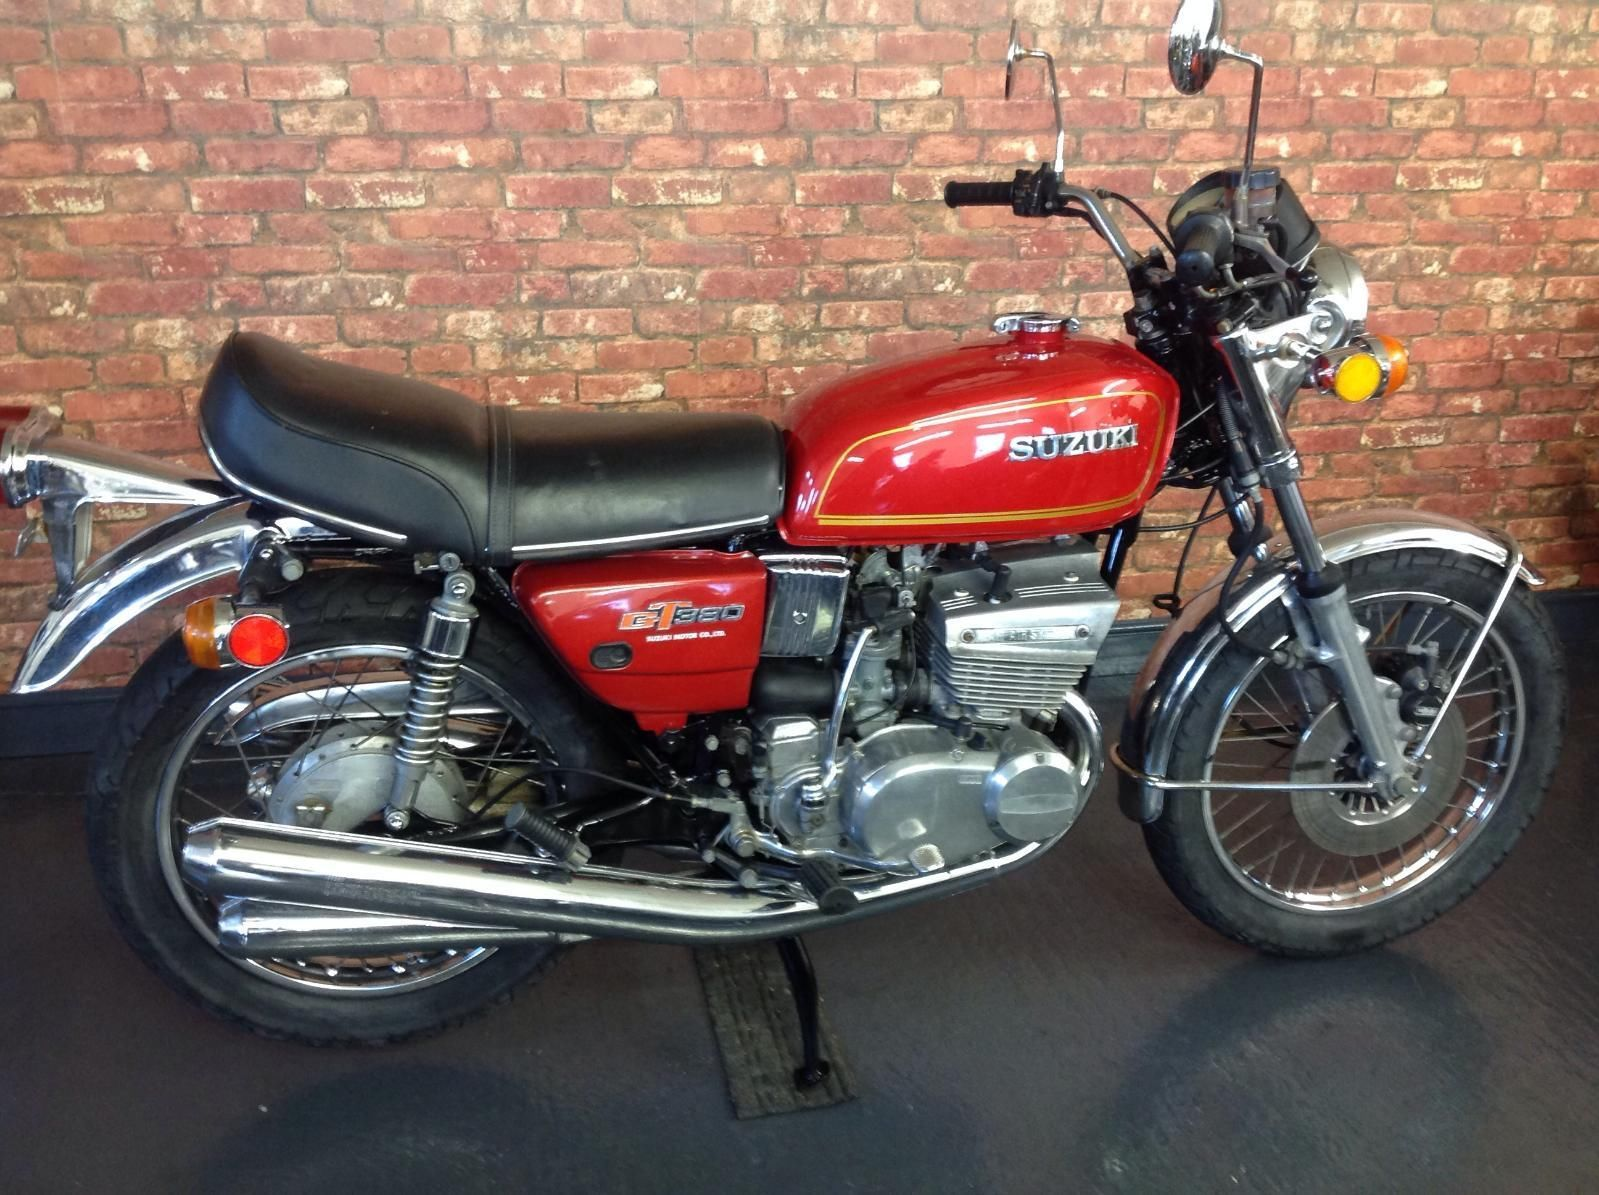 suzuki gt 380 m in candy gypsey red 1975 ebay this is. Black Bedroom Furniture Sets. Home Design Ideas